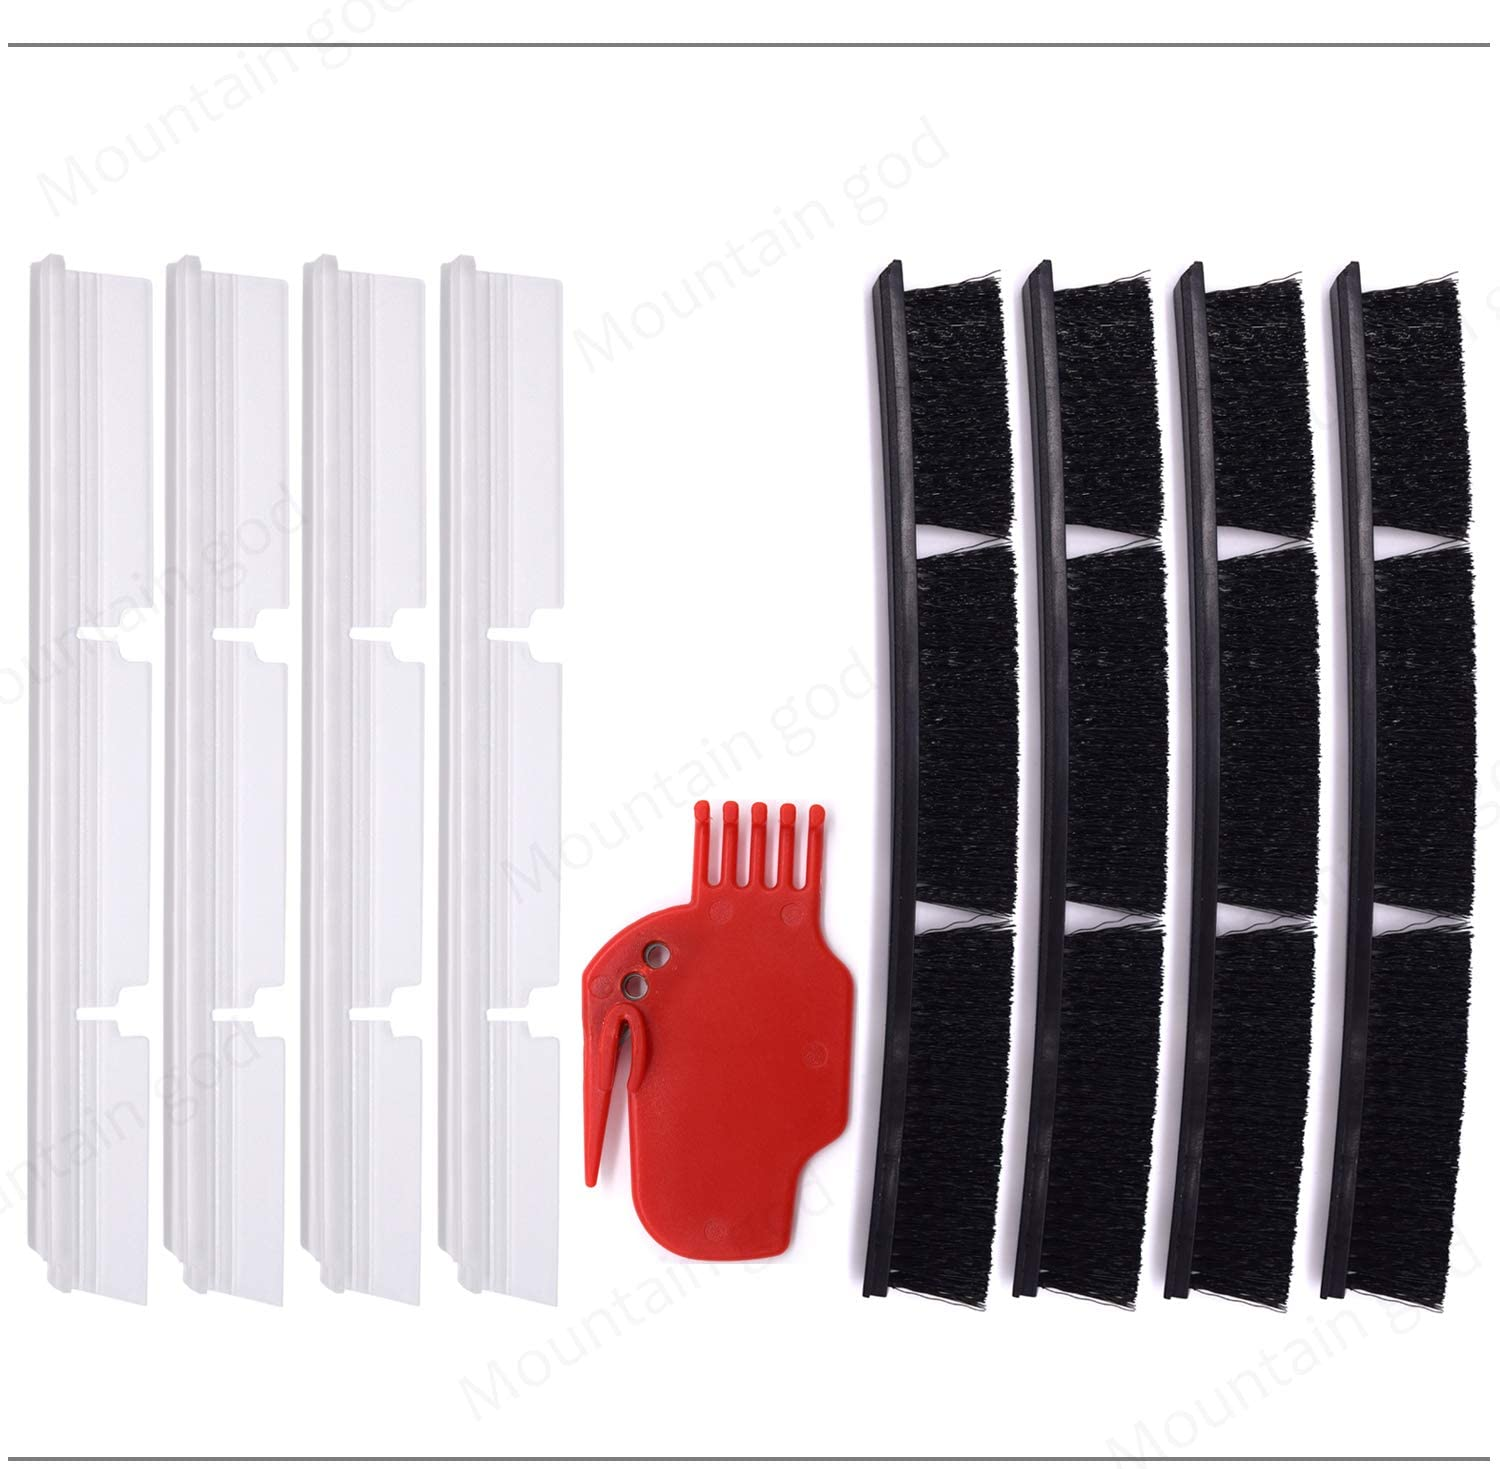 Mountain god Replacement Brush Bar Parts Kit - 4 Blade Brush Bars 4 Bristle Bar 1 Brush Cleaning Tool for Neato BotVac D Series - Vacuum Cleaner Blade Combo Brushes Bar Replenishment Accessory